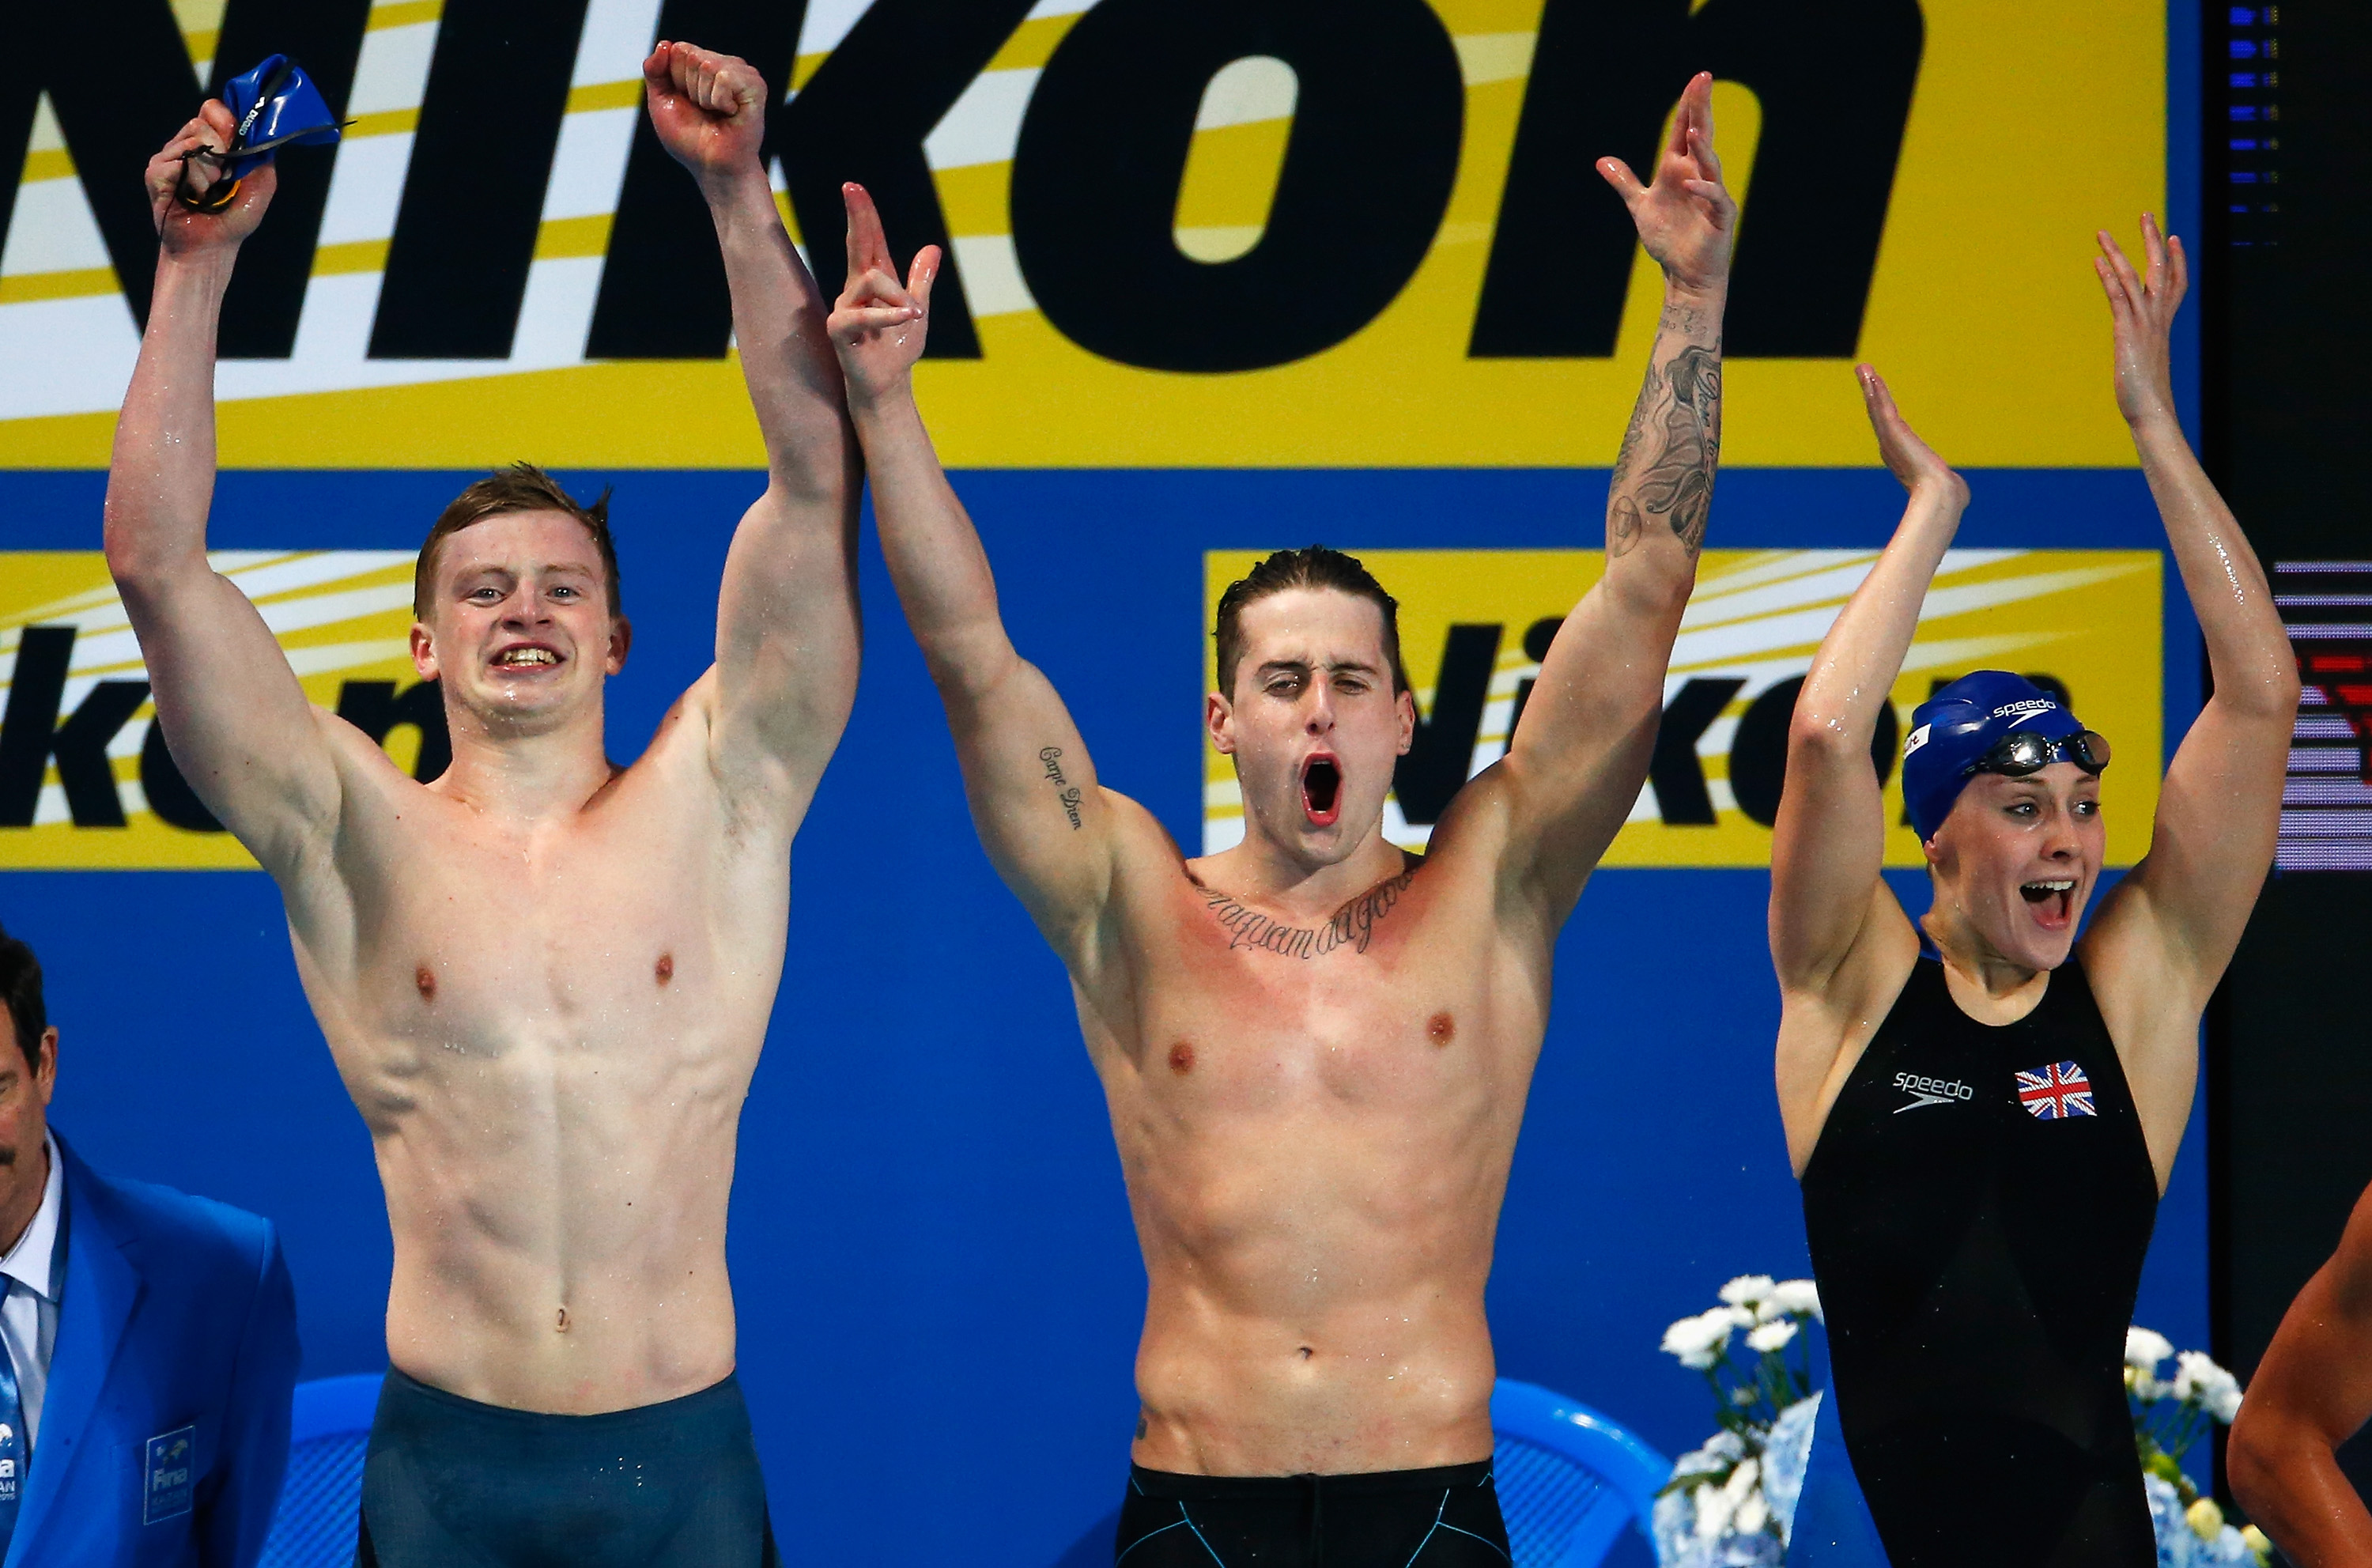 Adam Peaty, Chris Walker-Hebborn and Siobhan-Marie O'Connor of Great Britain celebrate winning gold in a new world record of 3:41.71 in the Mixed 4x100m Medley Relay Final on day twelve of the 16th FINA World Championships at the Kazan Arena.